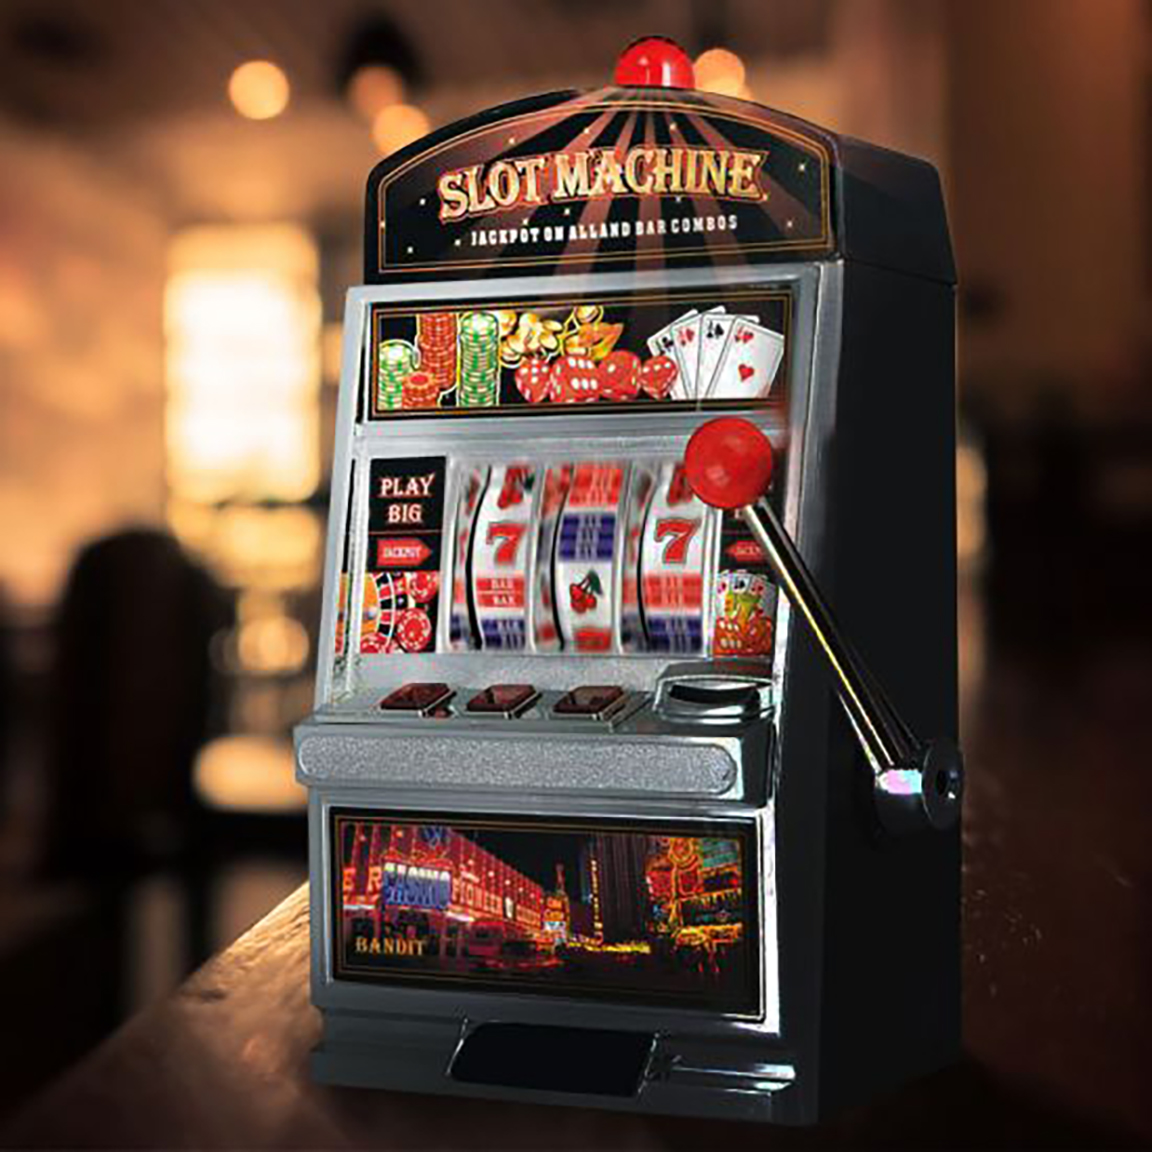 Metafora slot machine